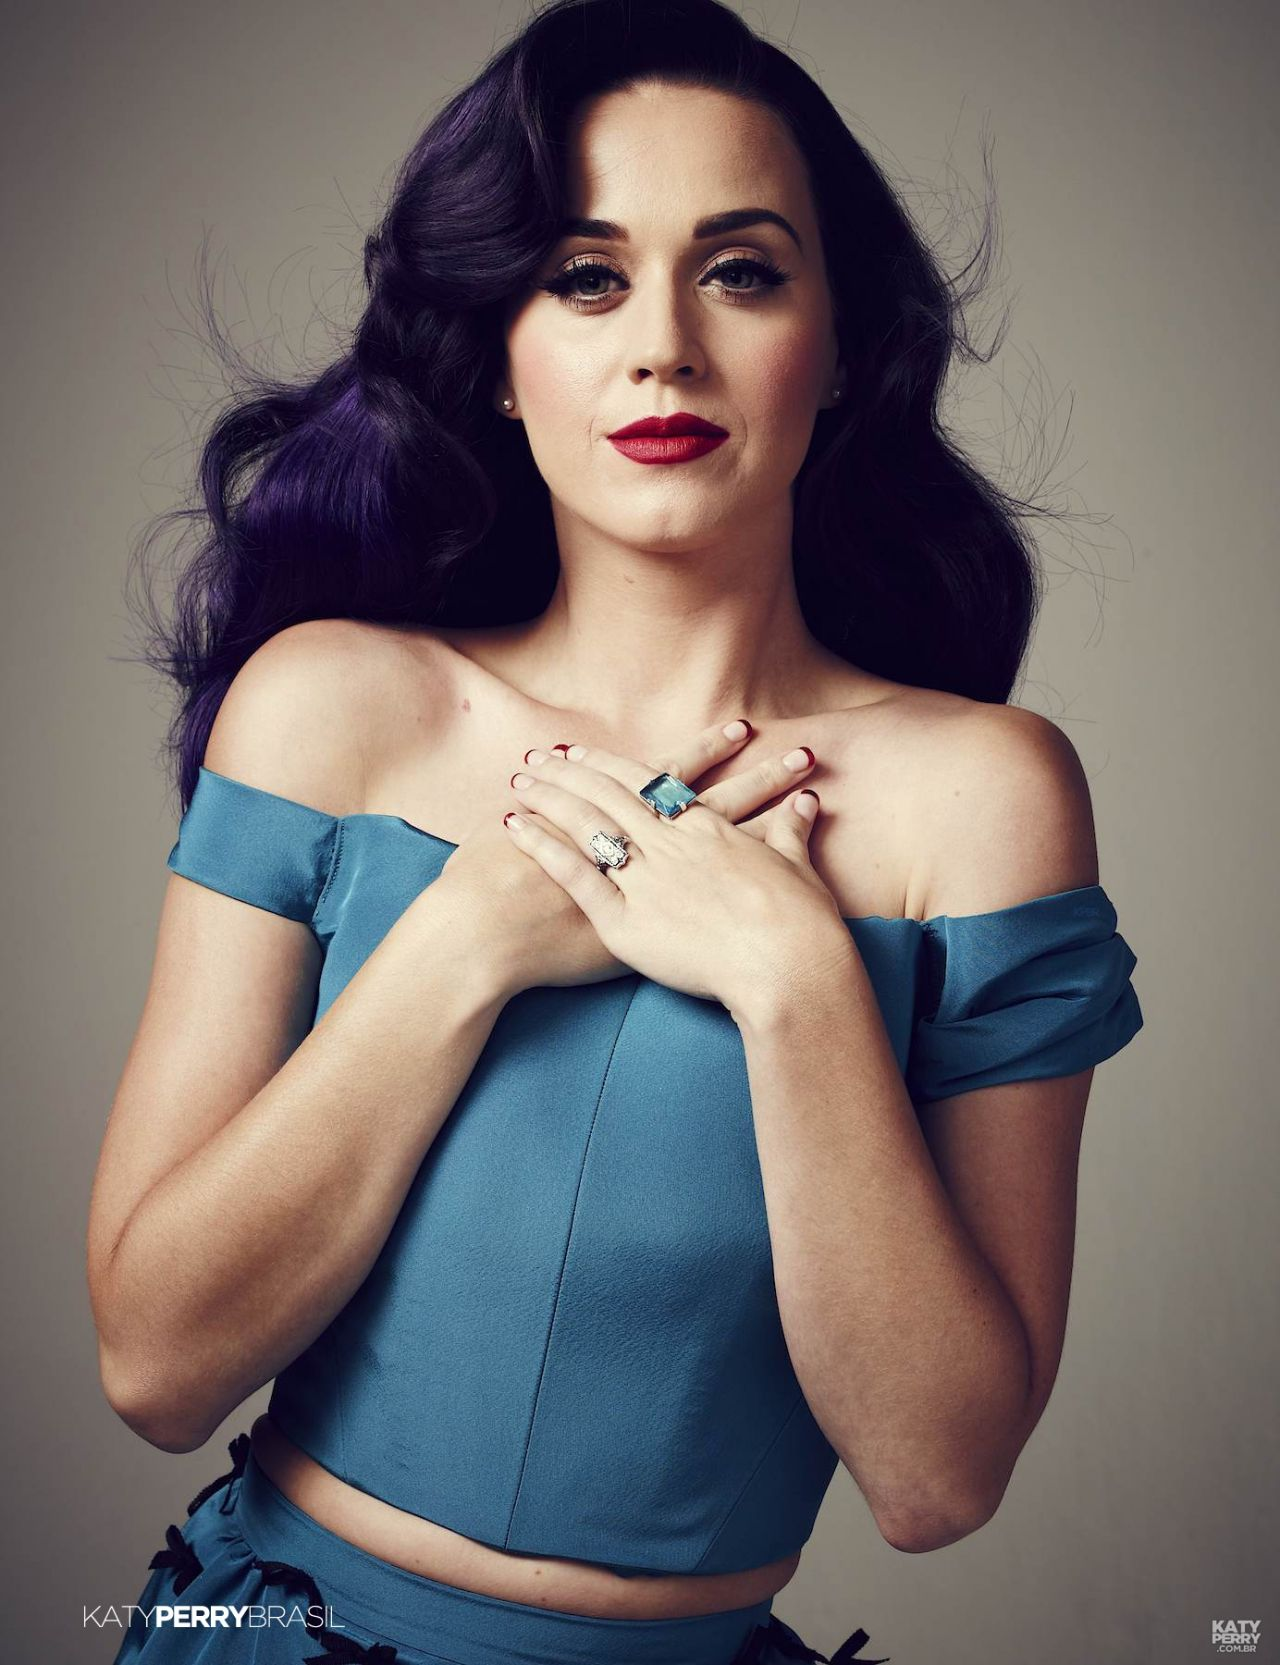 katy perry gallery